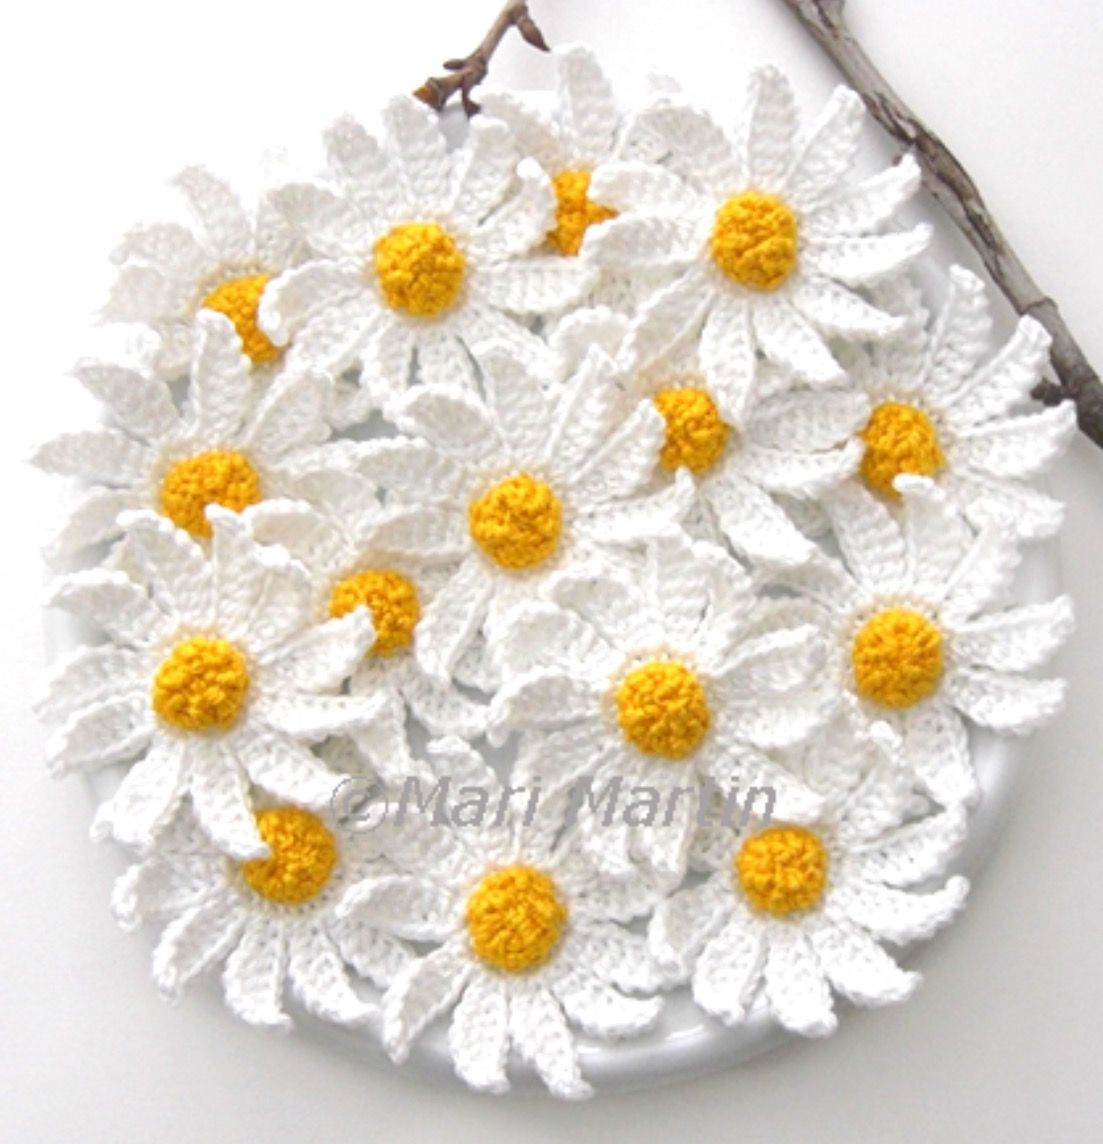 Pin by azime on elileri pinterest crochet a crochet daisy flower this pretty was just too much of a find not to share with you guys one of the simplest designs to recreate and one of the most eleg izmirmasajfo